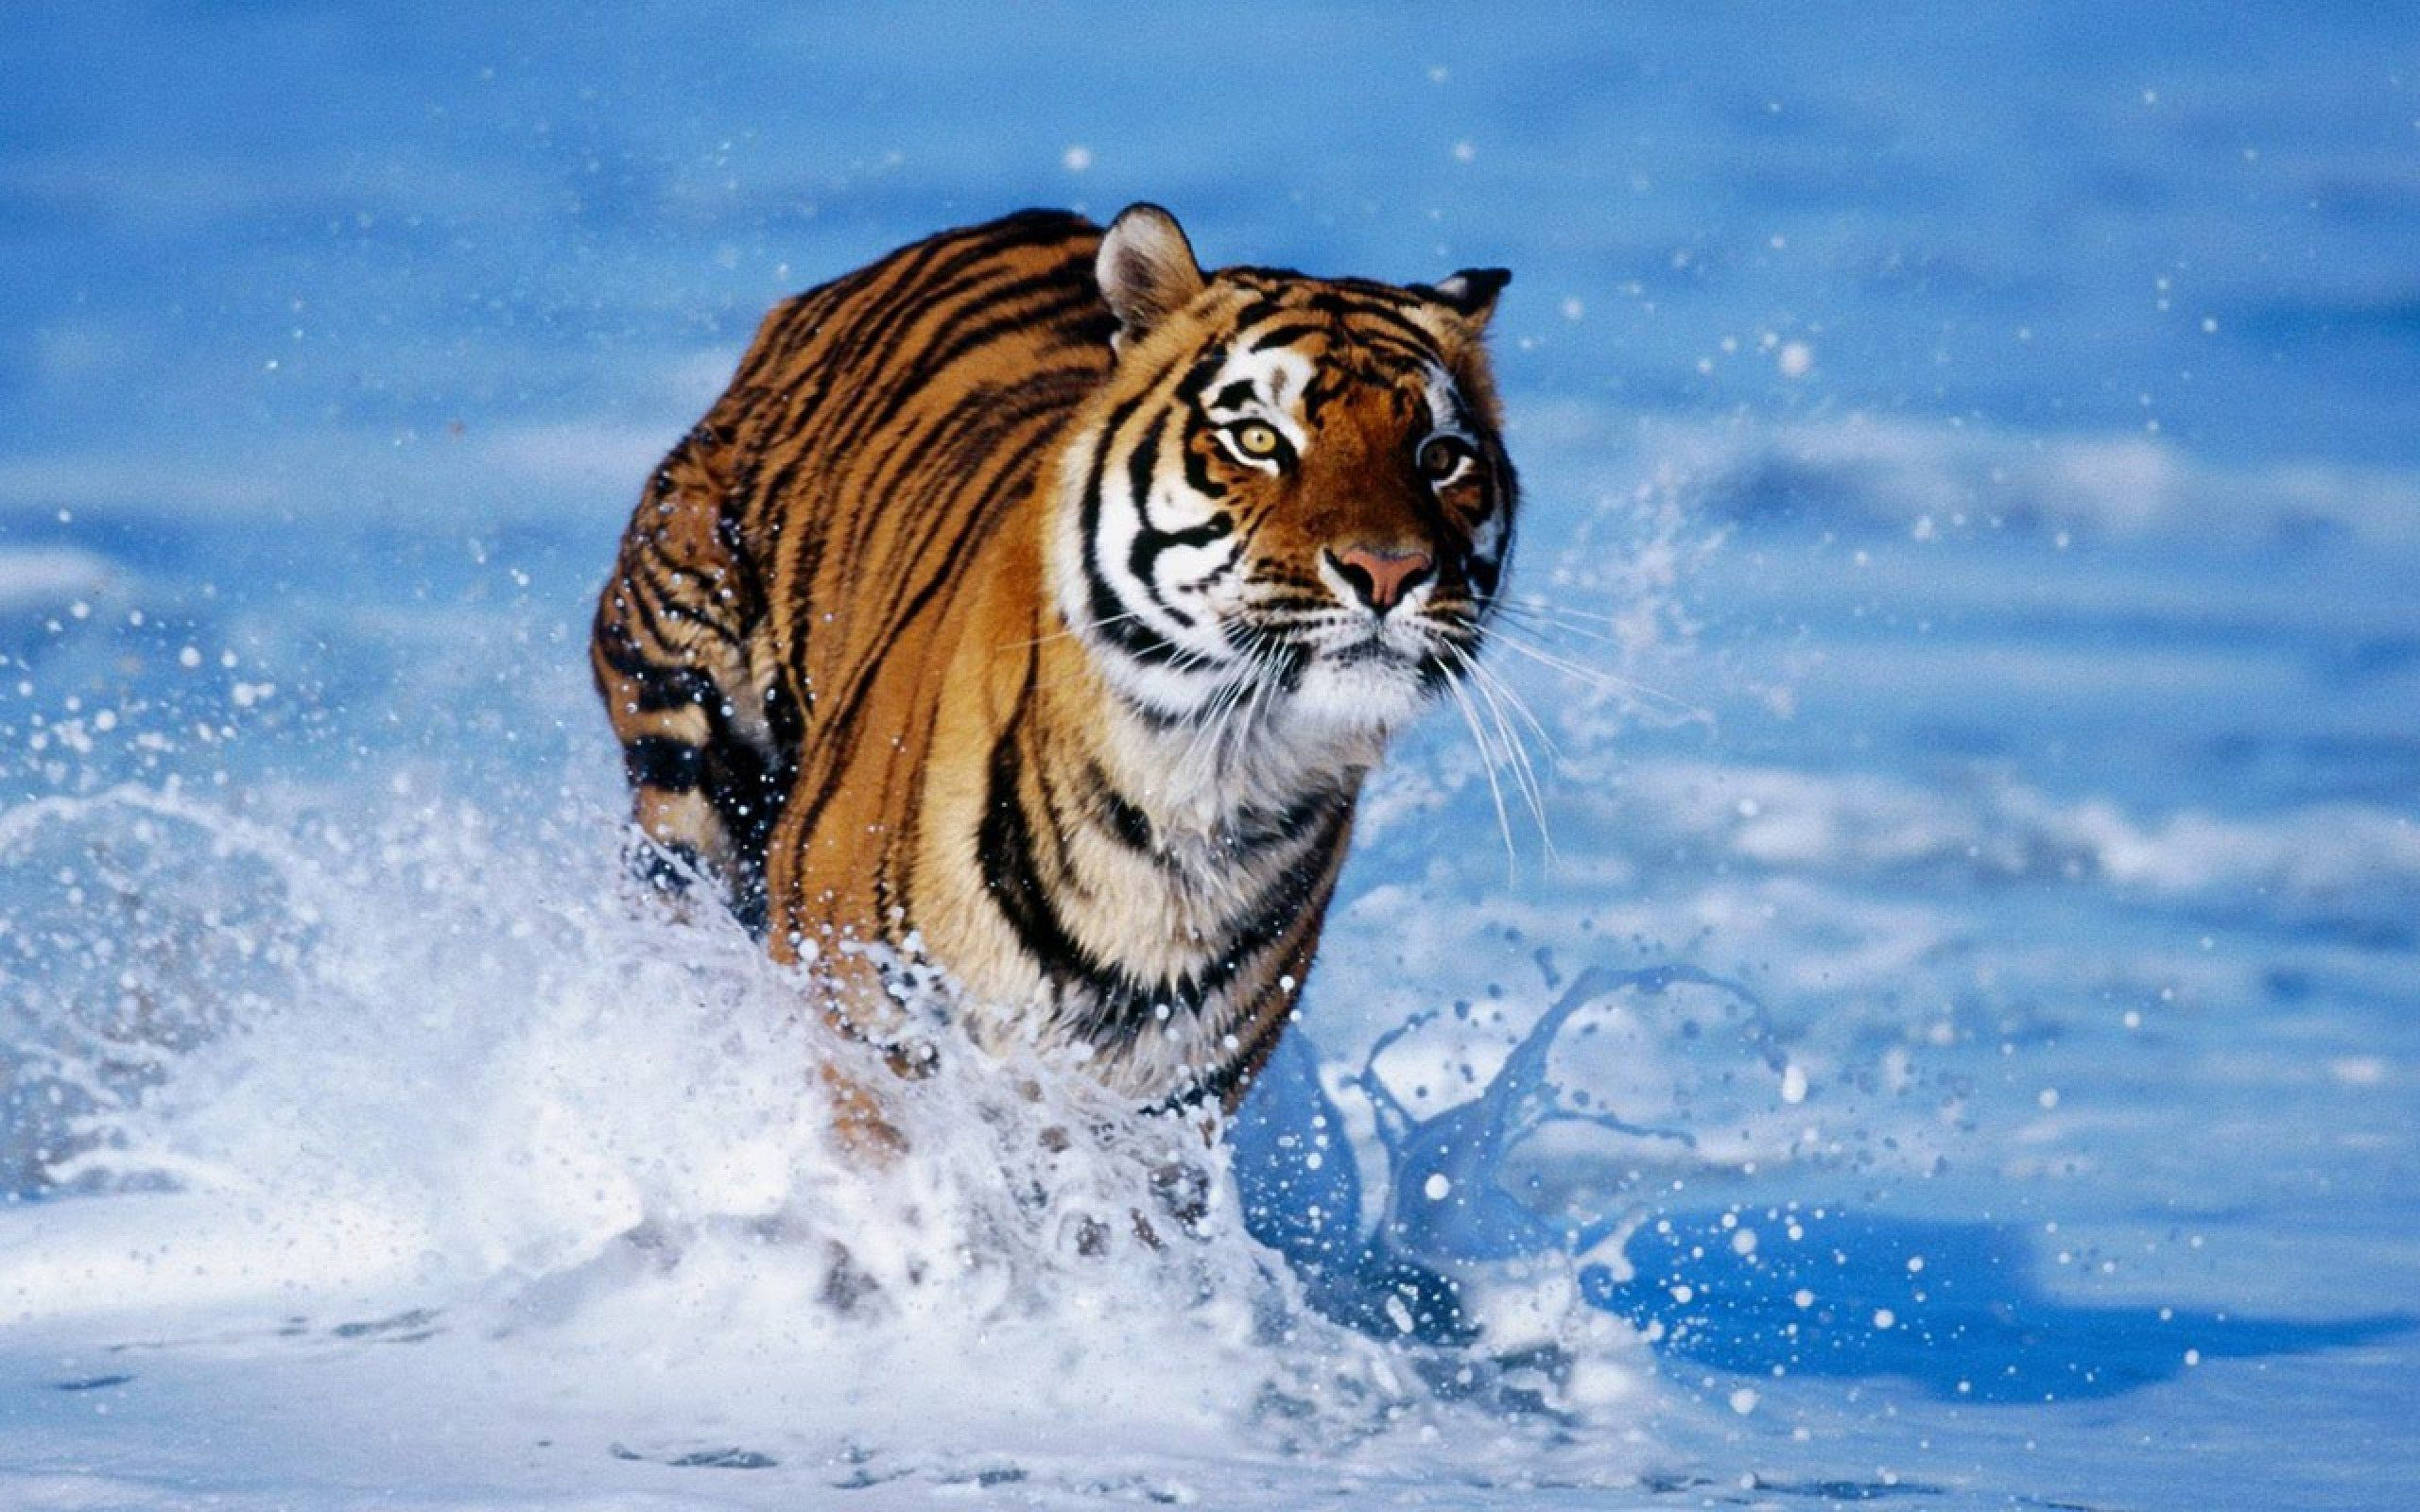 hd tiger background - hd wallpapers images